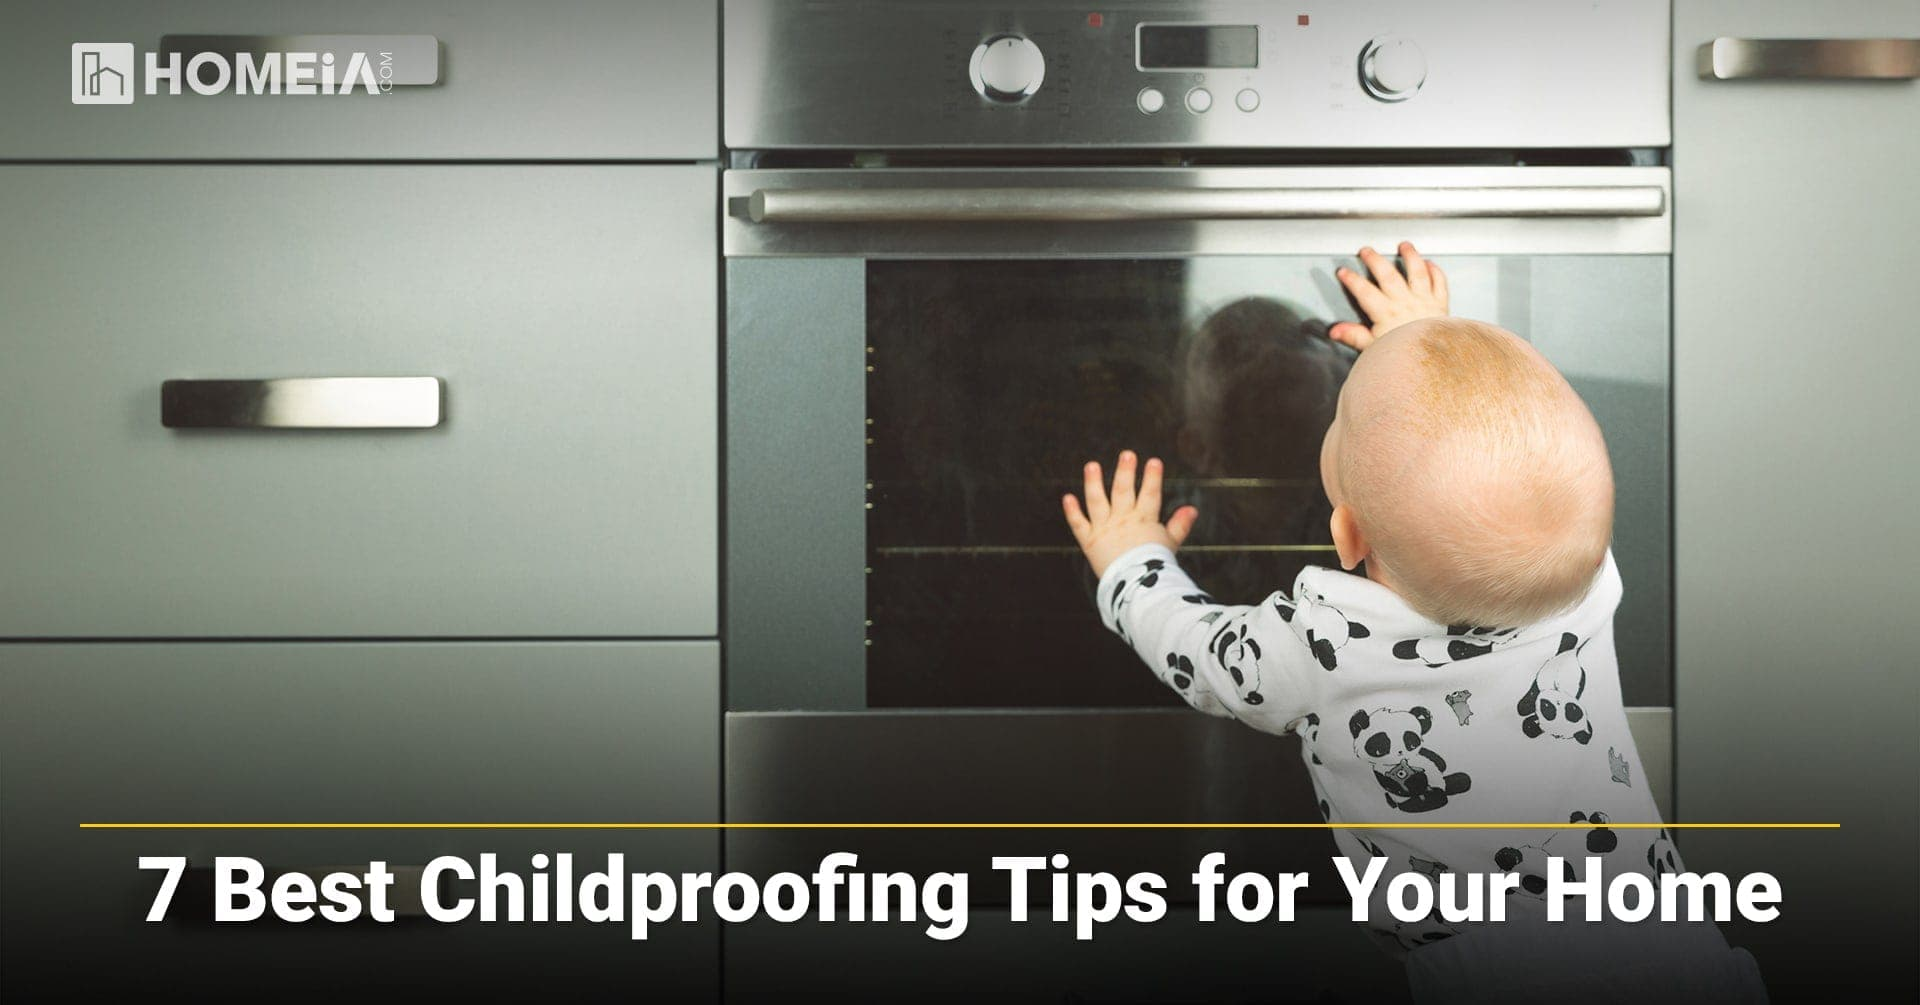 7 Best Baby Proofing Tips for Your Home